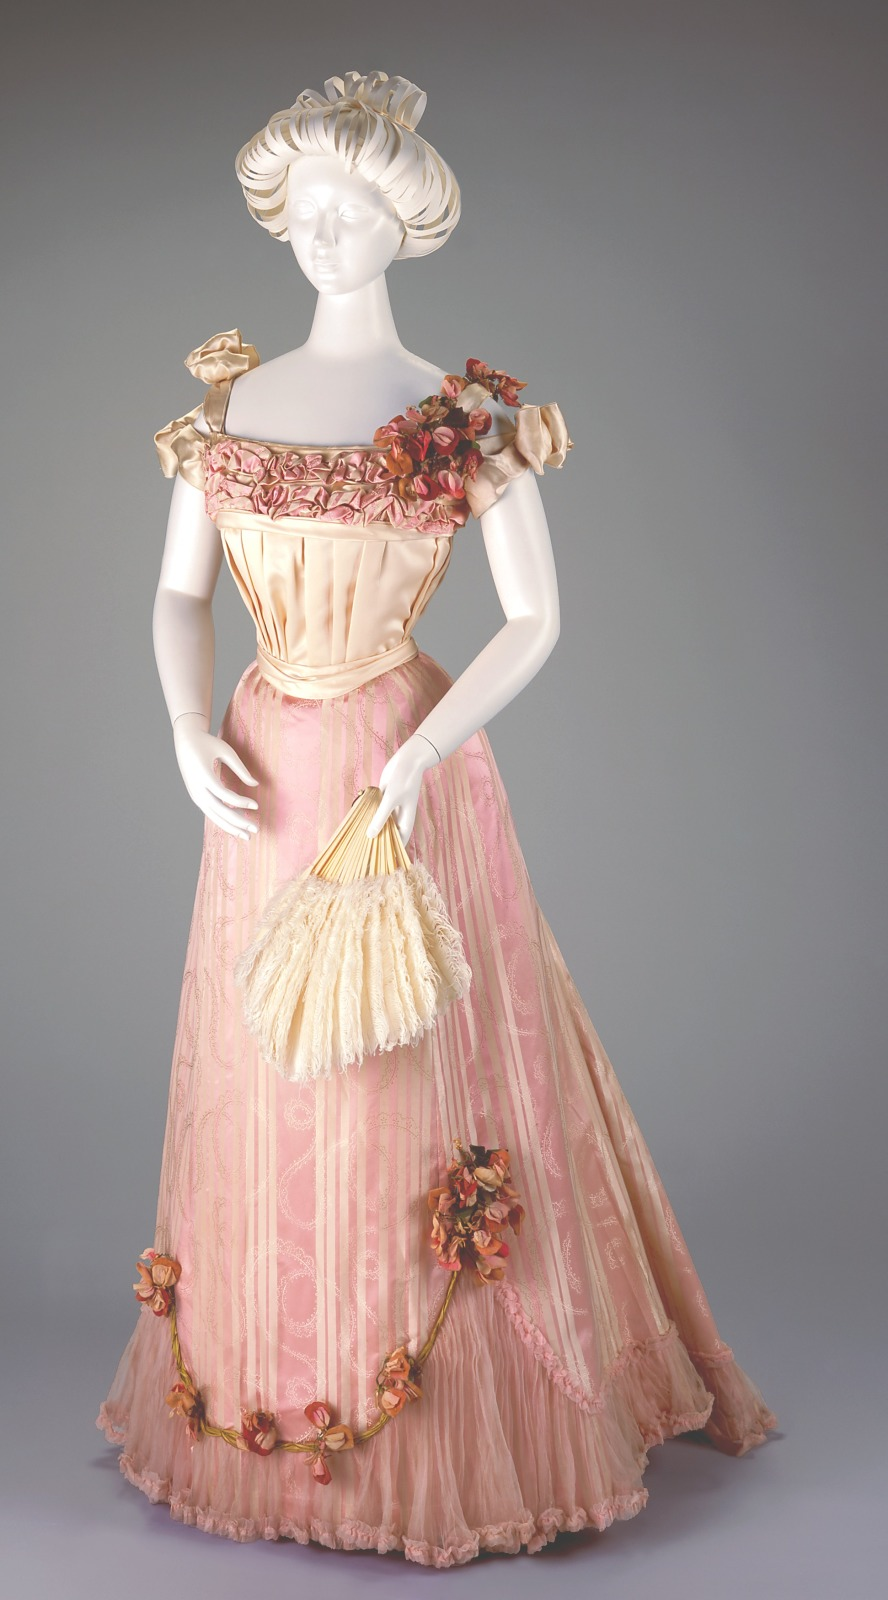 Shades of Victorian Fashion: Pretty in 19th Century Pink | Author ...